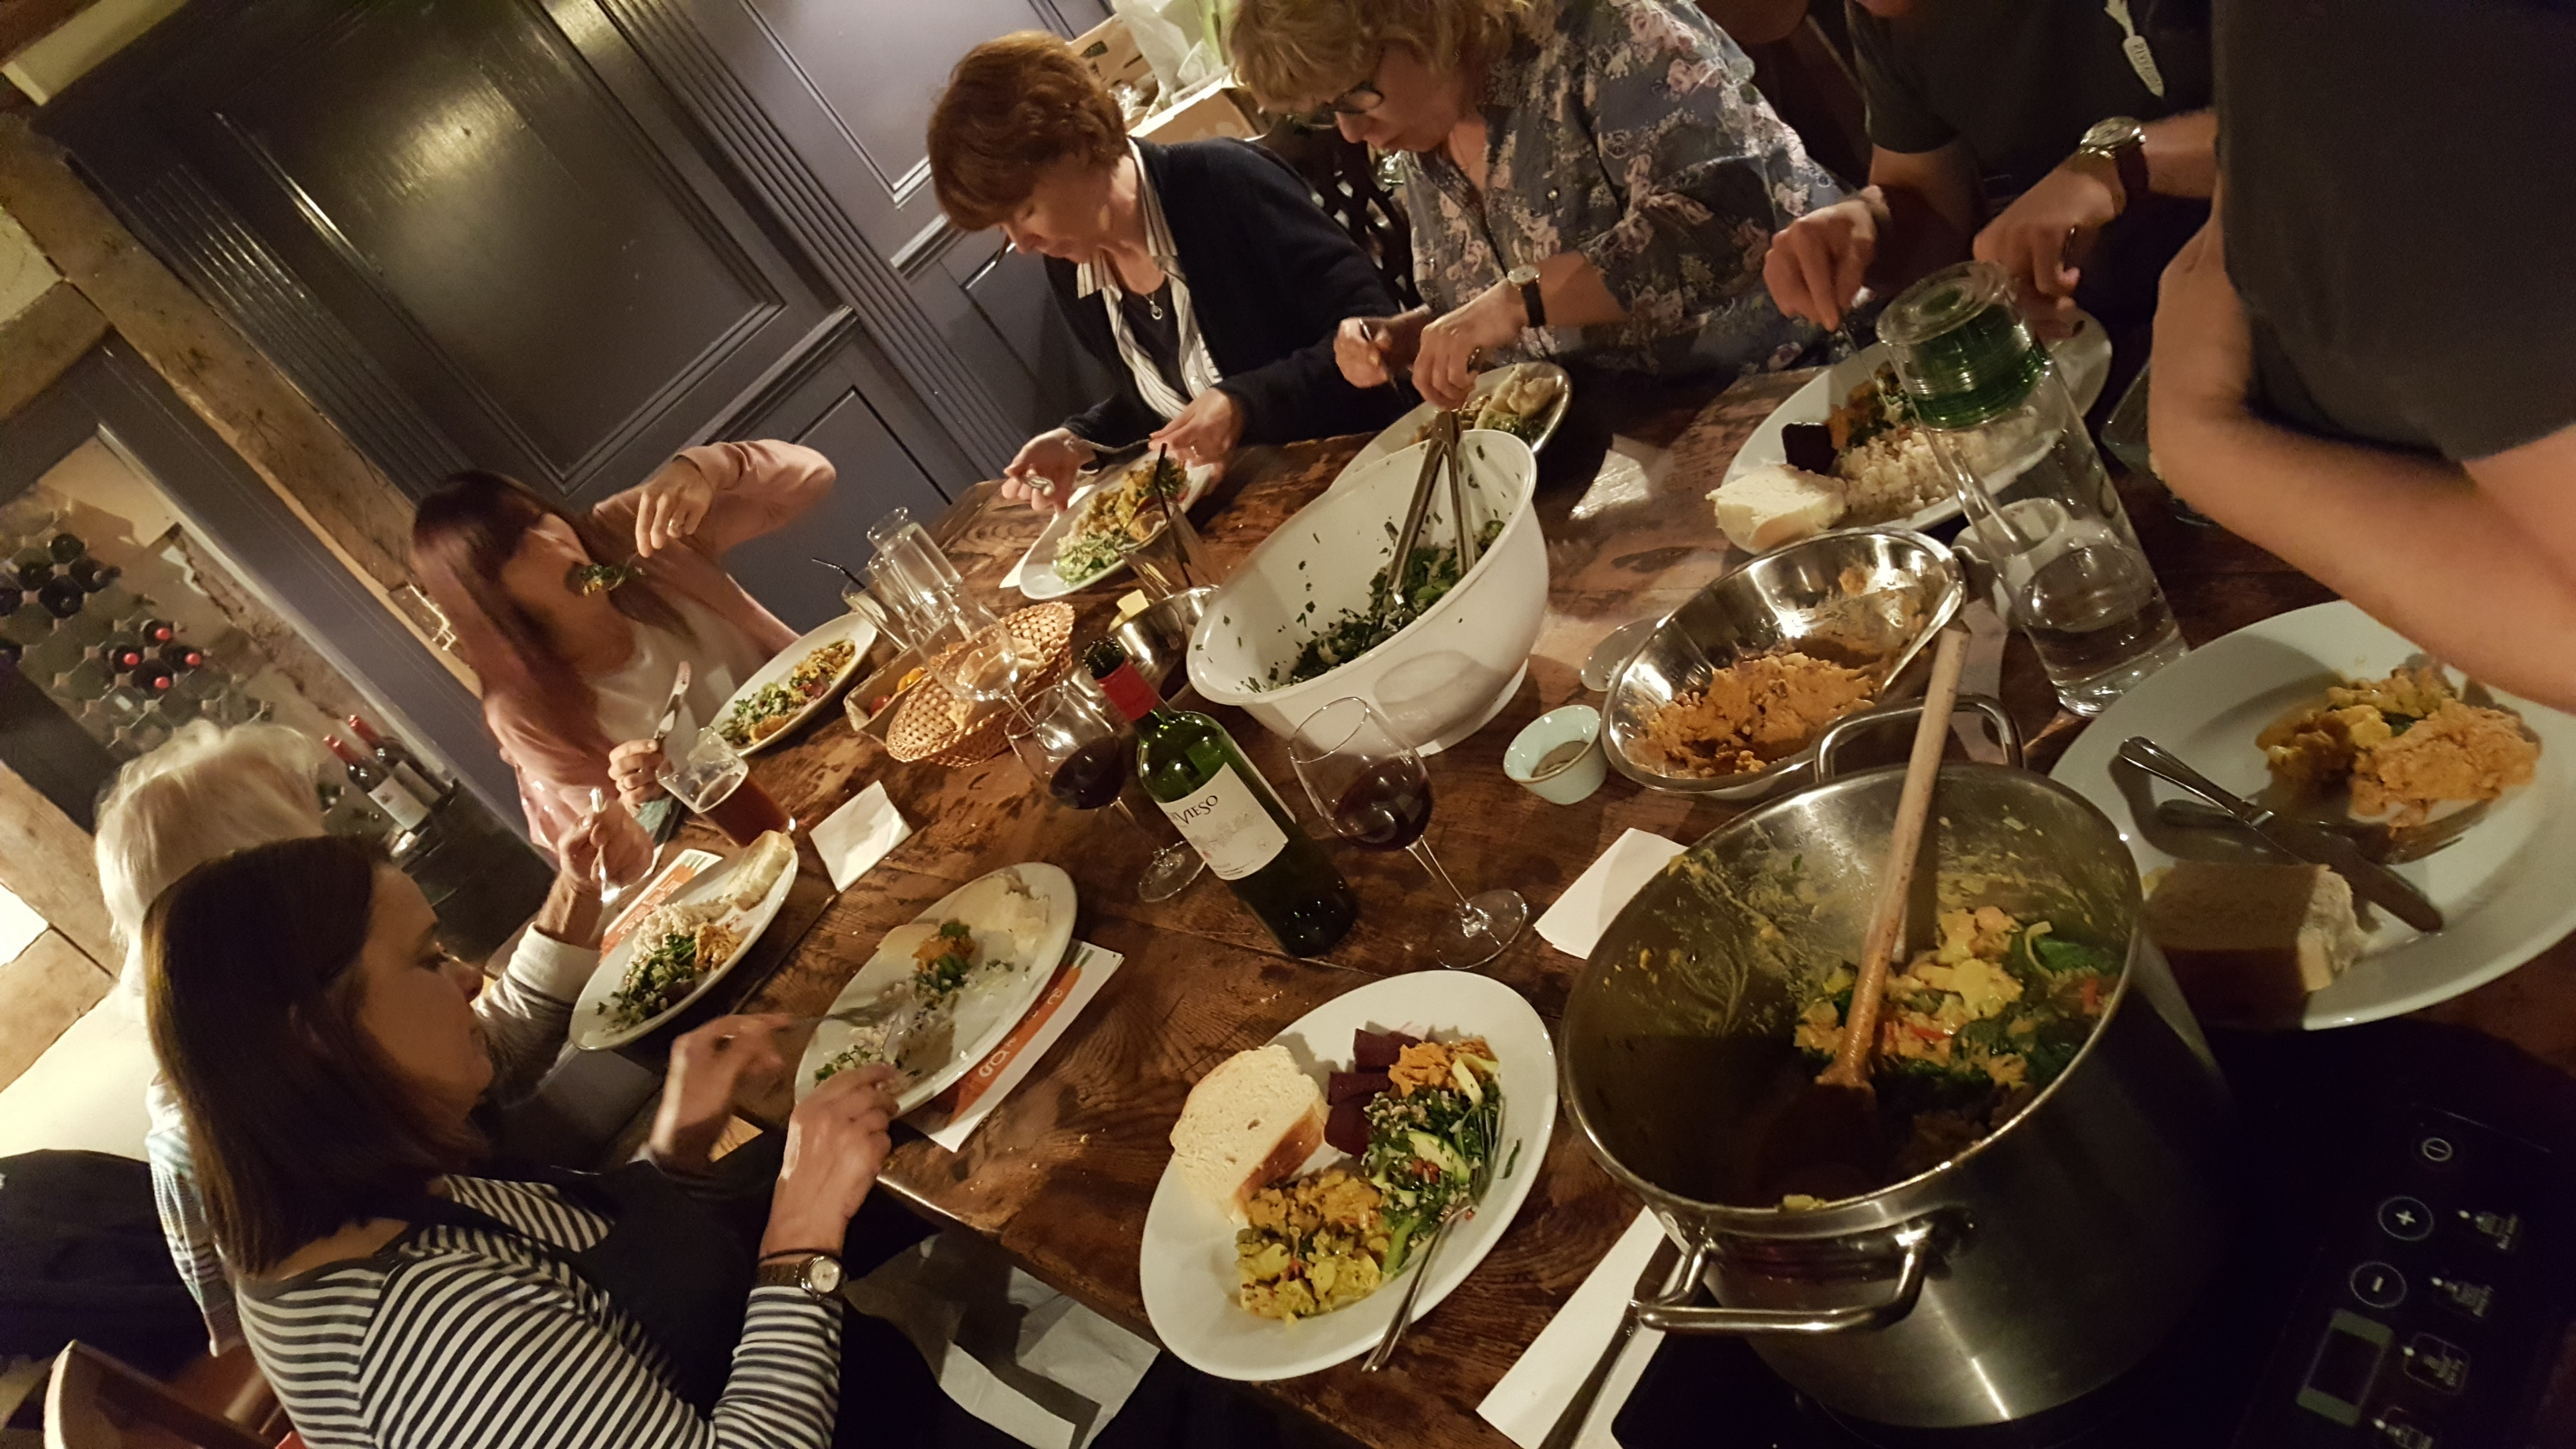 The feast: our group tucking into our dinner at a big wooden table with our dishes spread between the place settings